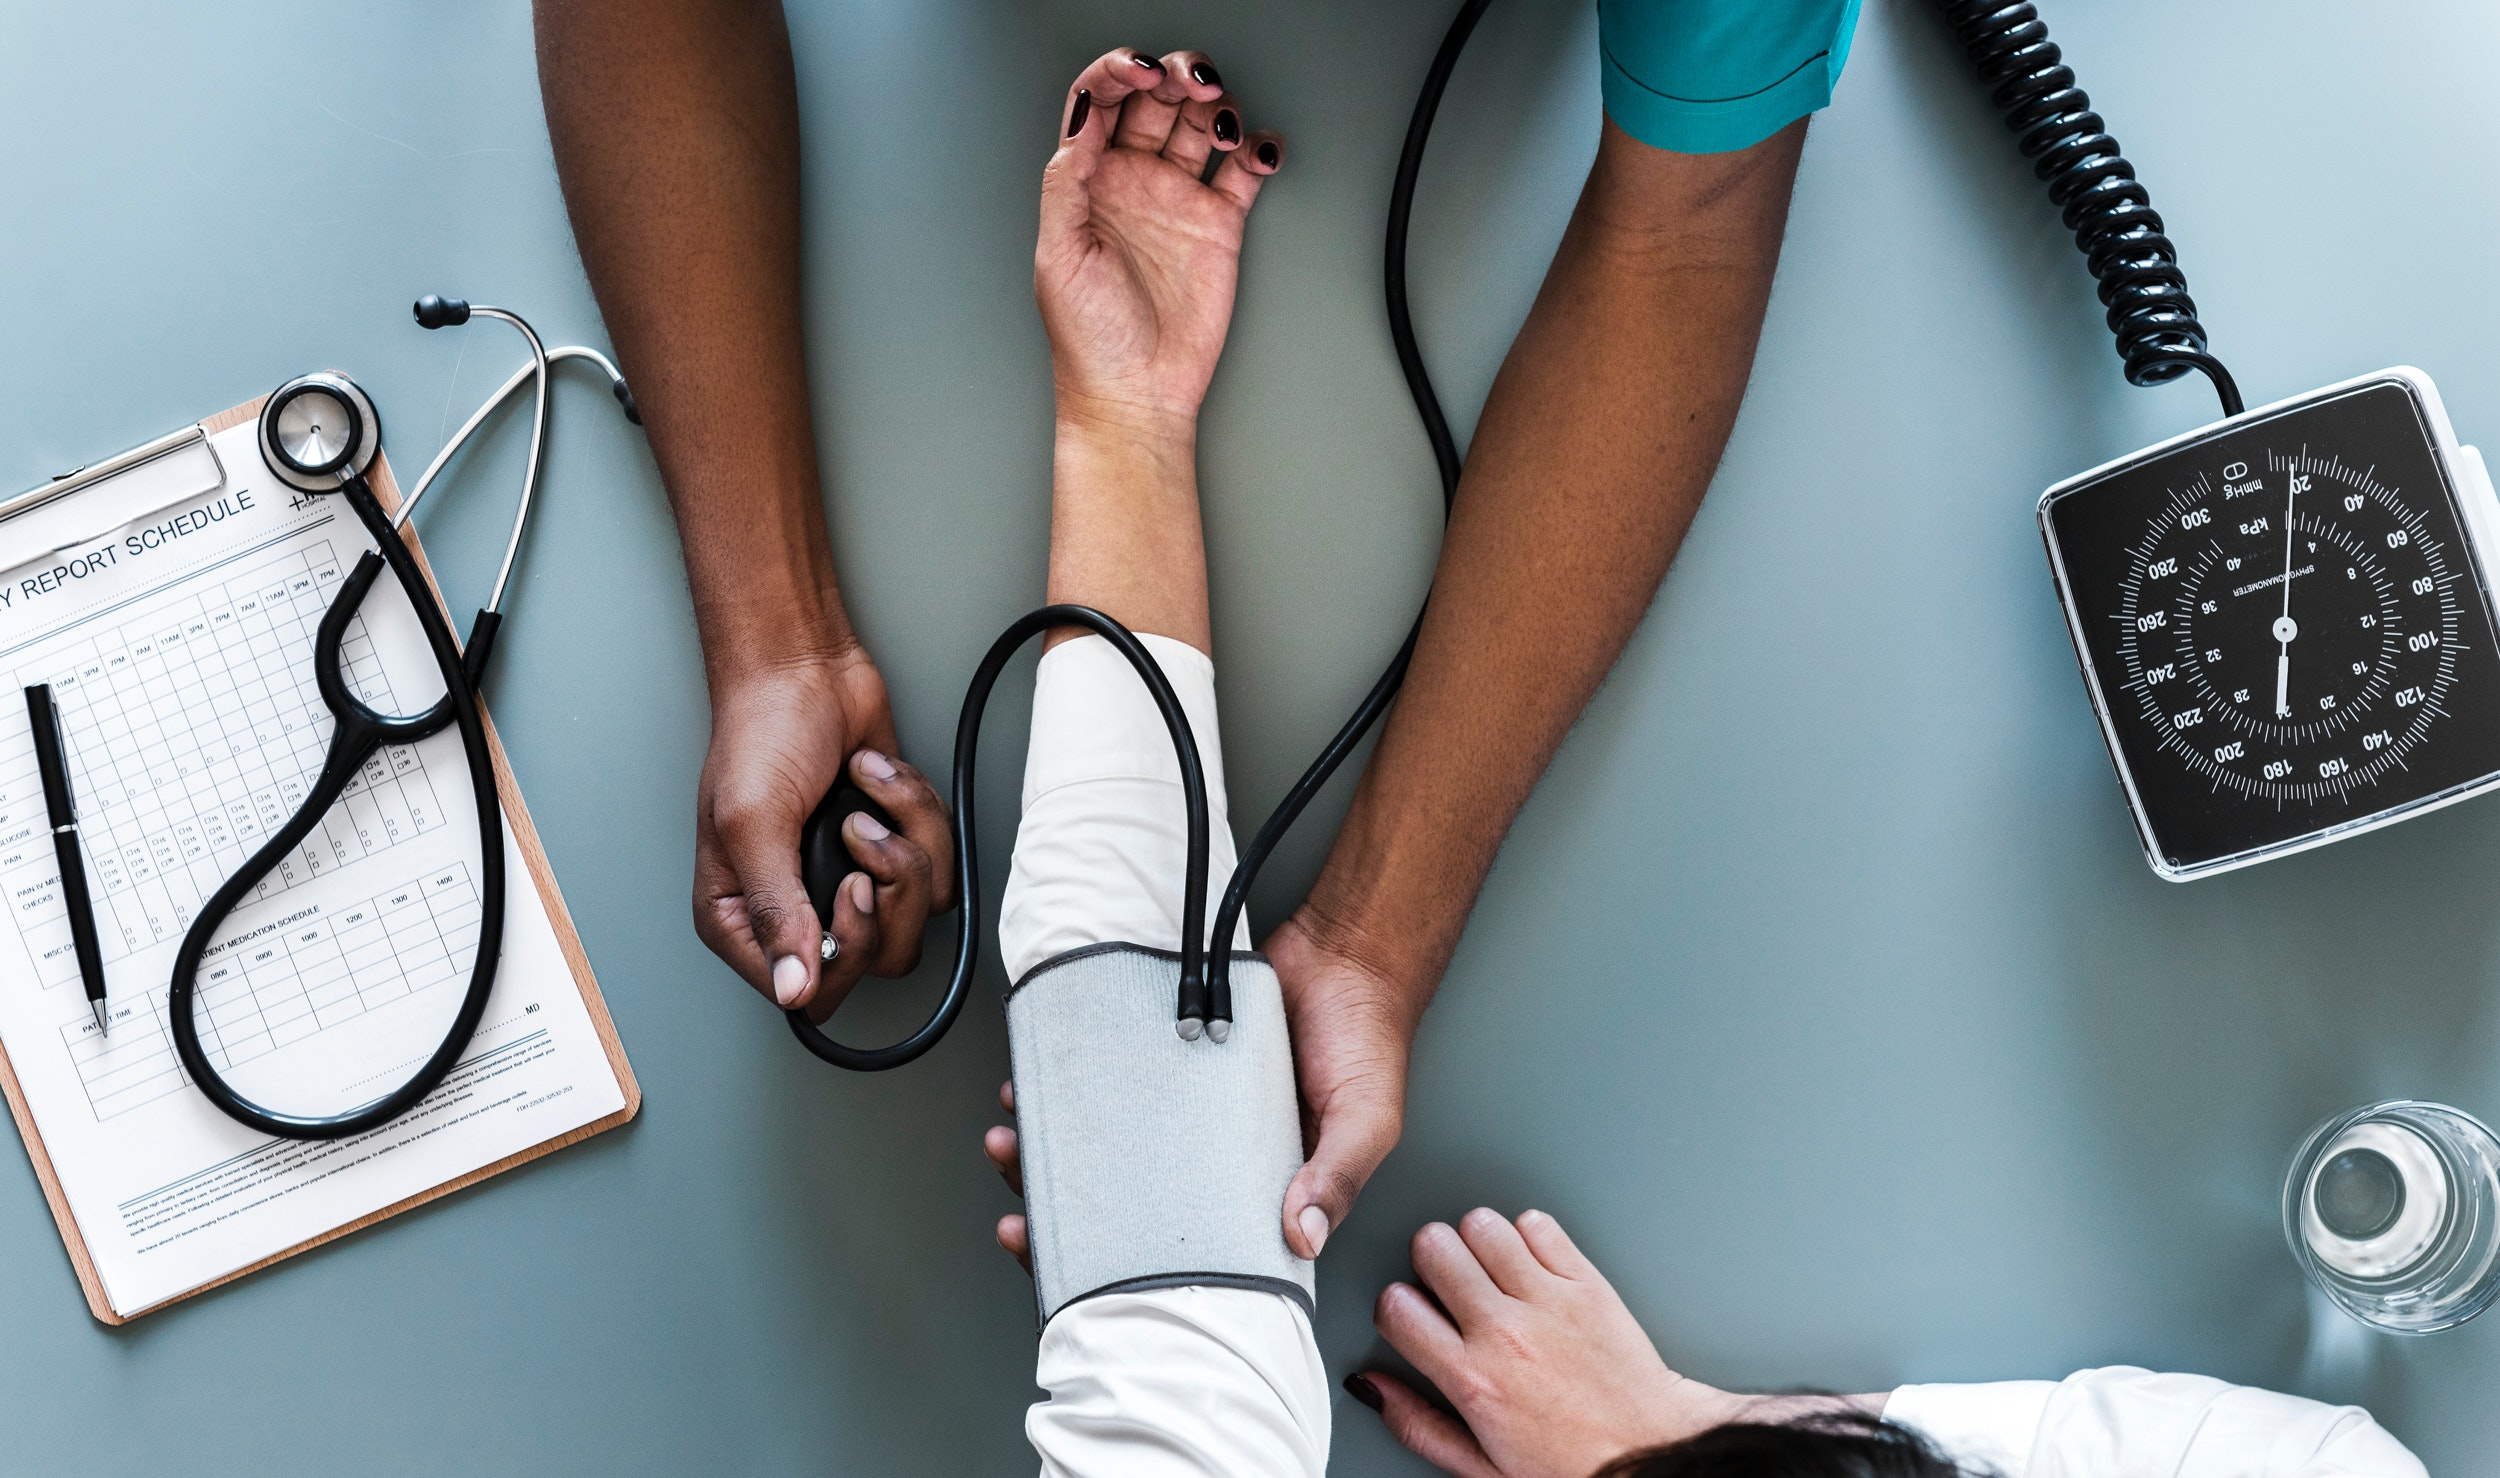 arm laying out having blood pressure taken by a medical professional